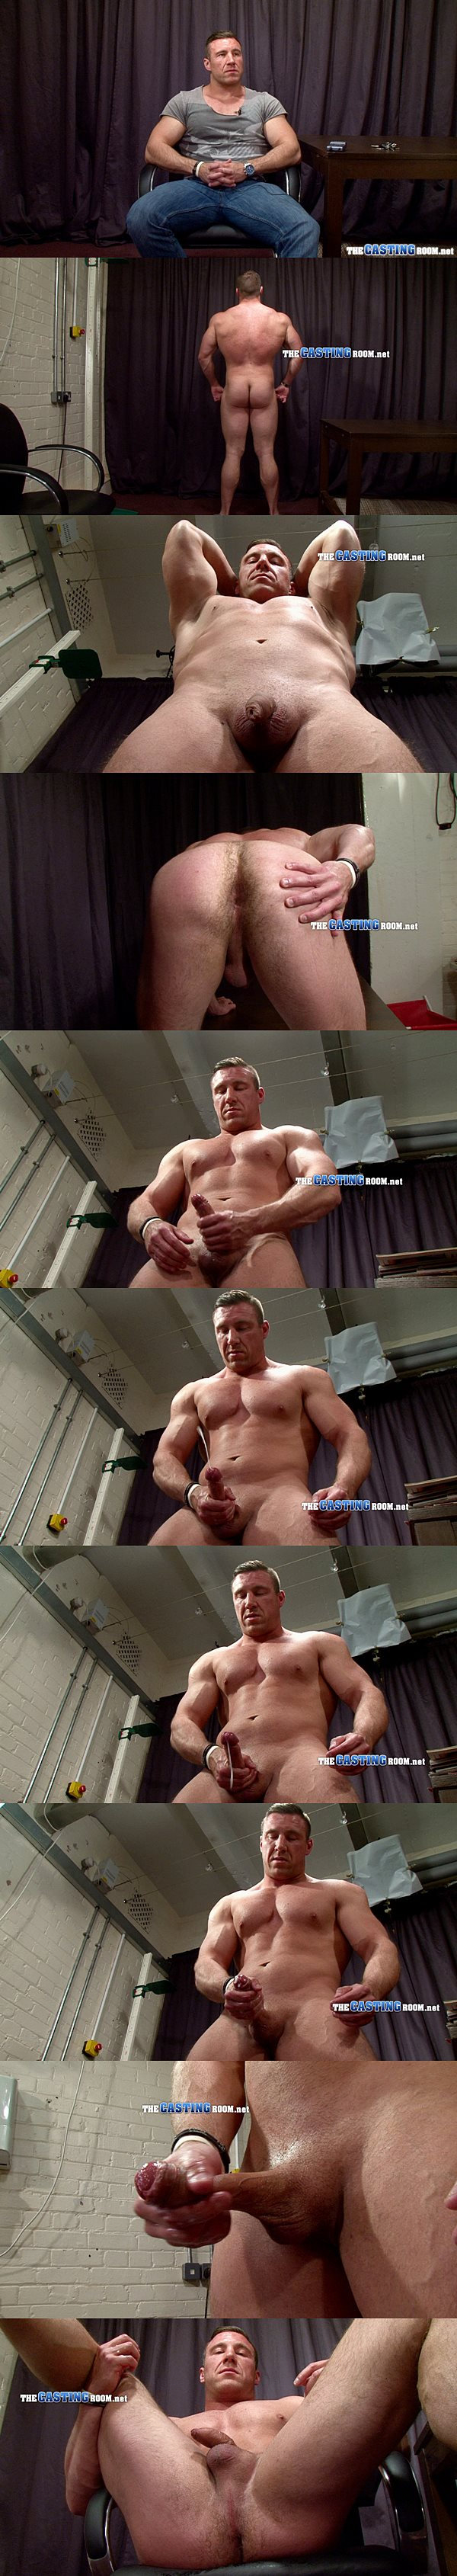 Masculine bodybuilder George shows us his gorgeous muscular body before he shoots a big load at Thecastingroom